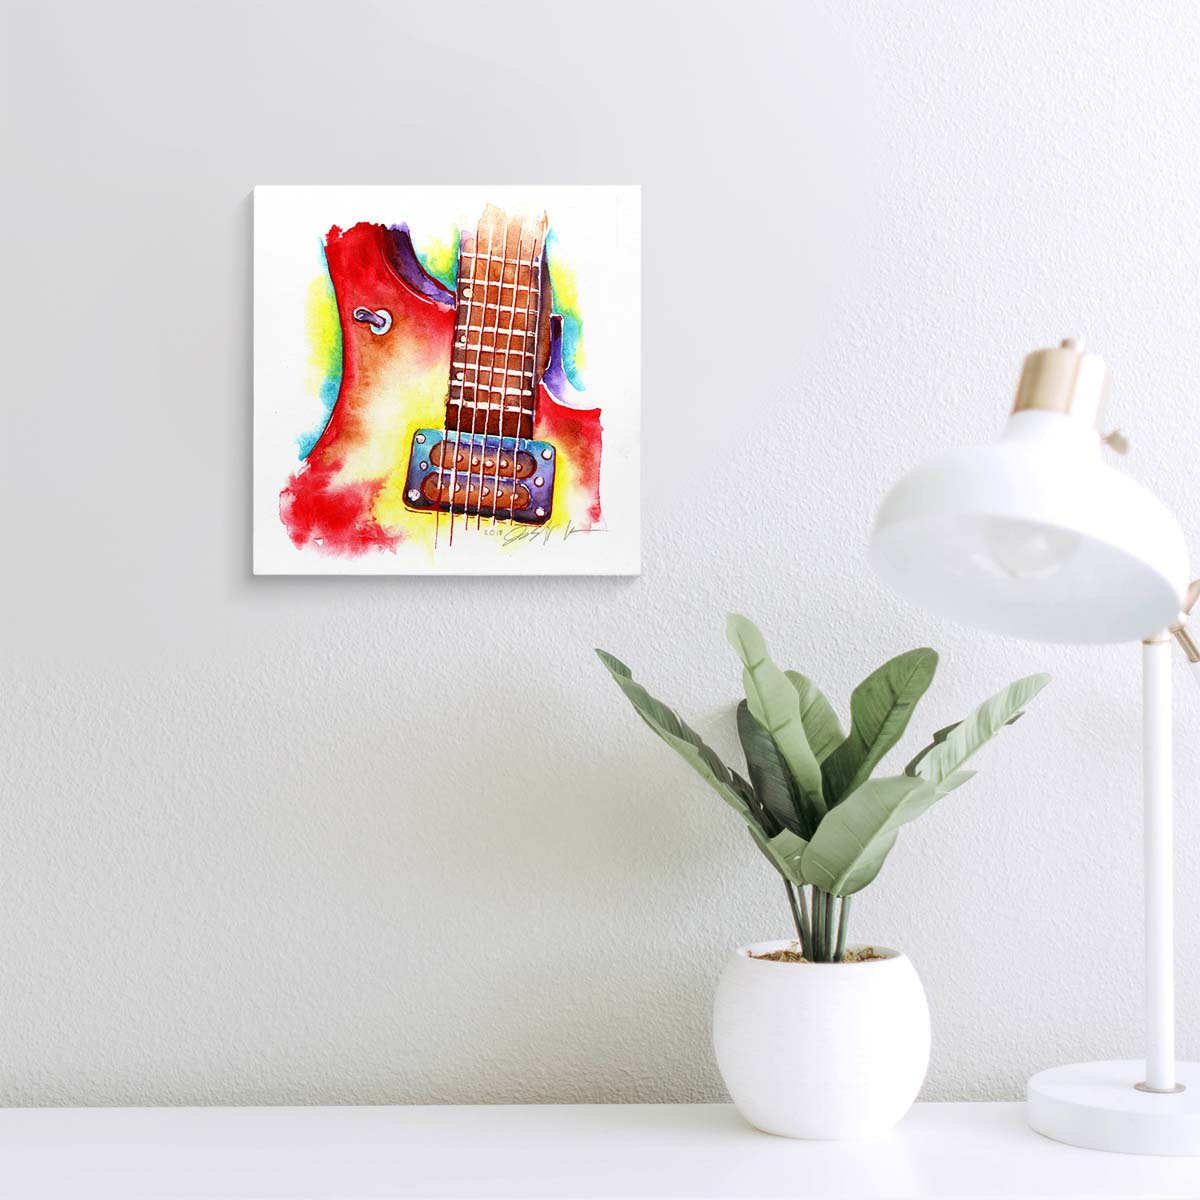 Red and yellow electric guitar painting on a wall